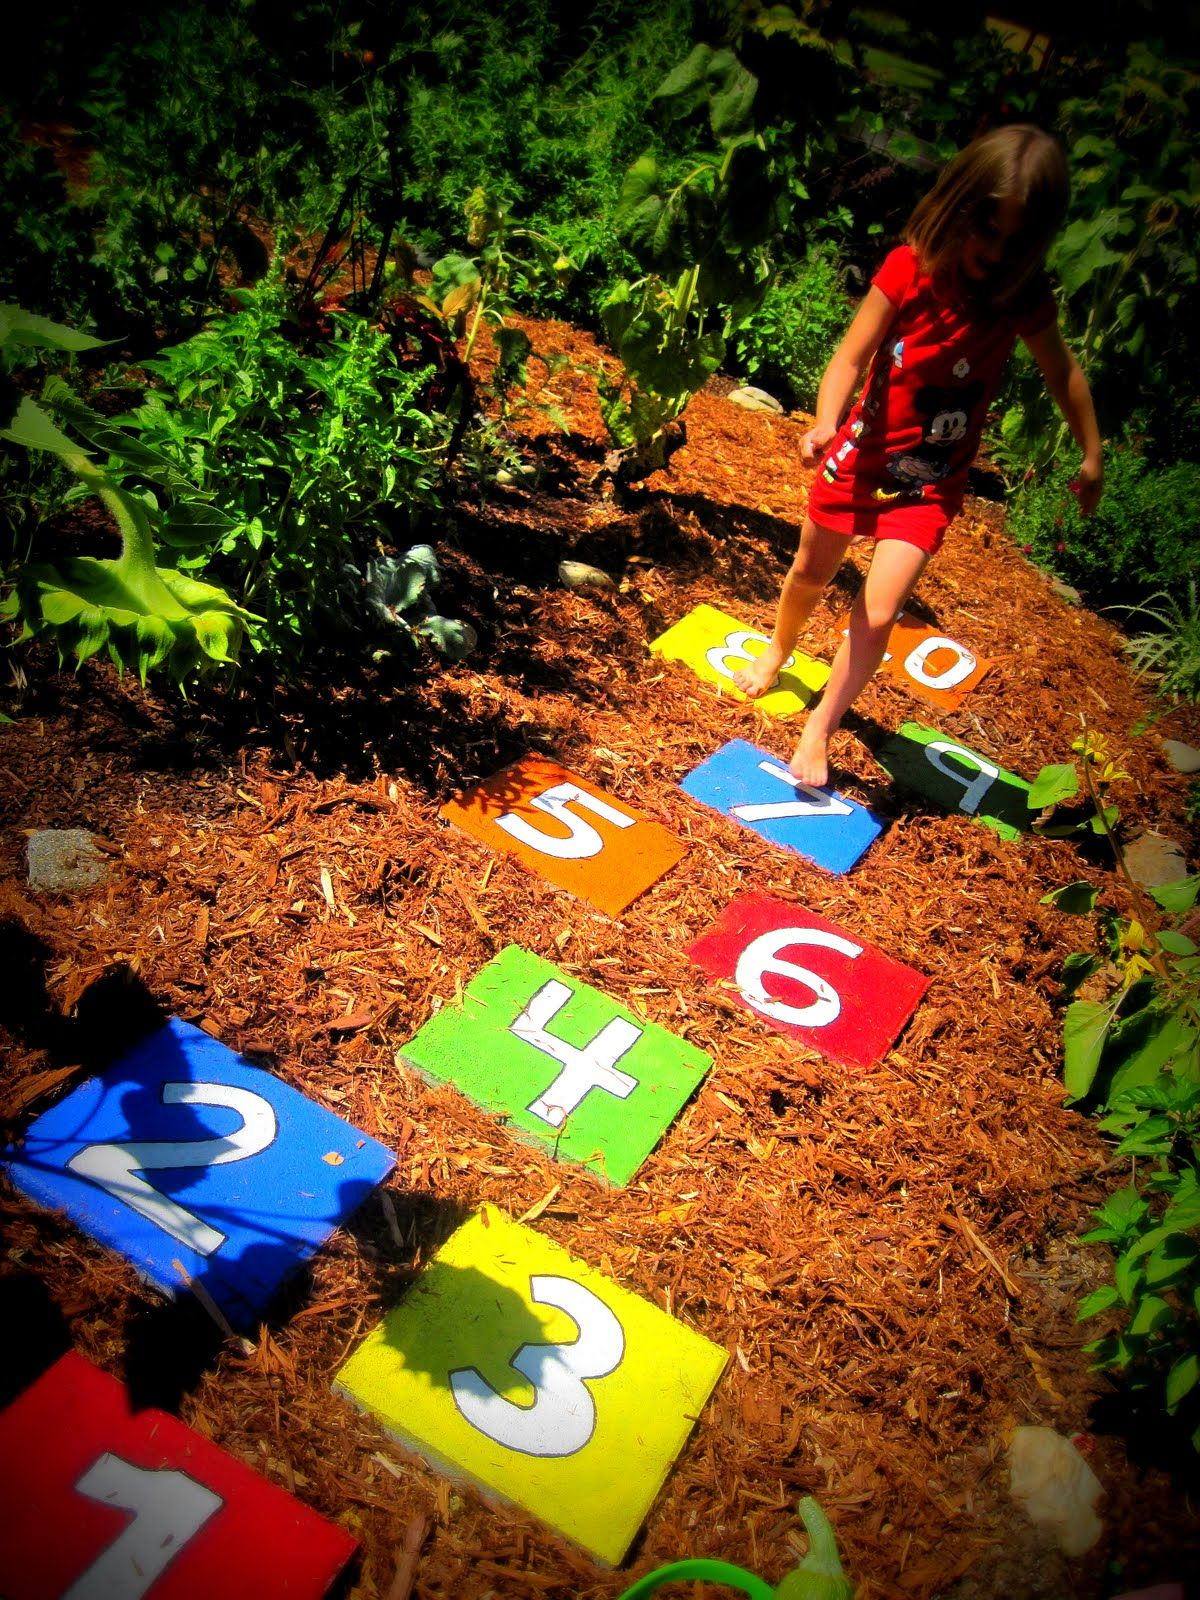 30 Beautiful DIY Stepping Stone Ideas to Decorate Your Garden --> Hopscotch Stepping Stones